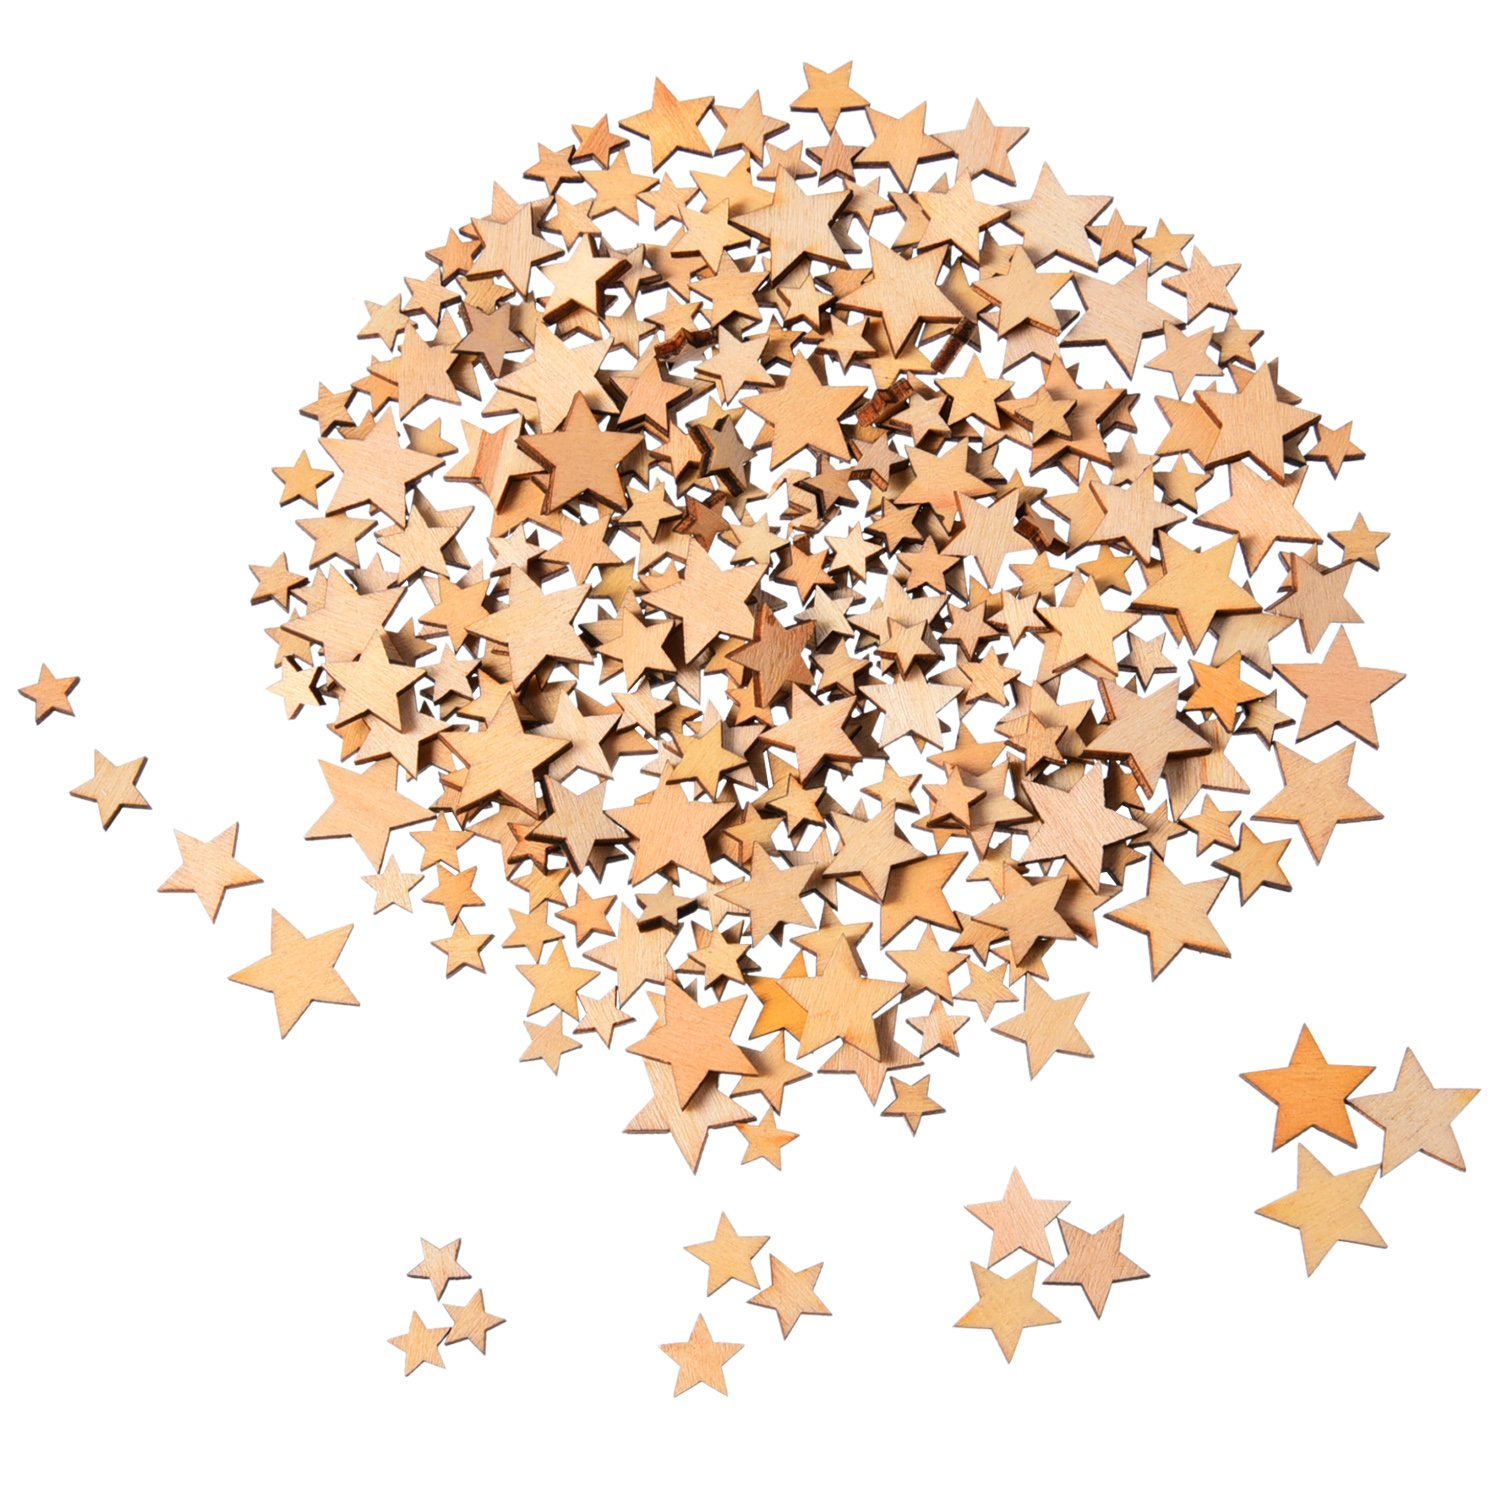 200 Pieces Wooden Stars Blank Wood Star Slices Mini Star Embellishments for Wedding Crafts Making DIY, 4 Sizes Mixed Outus